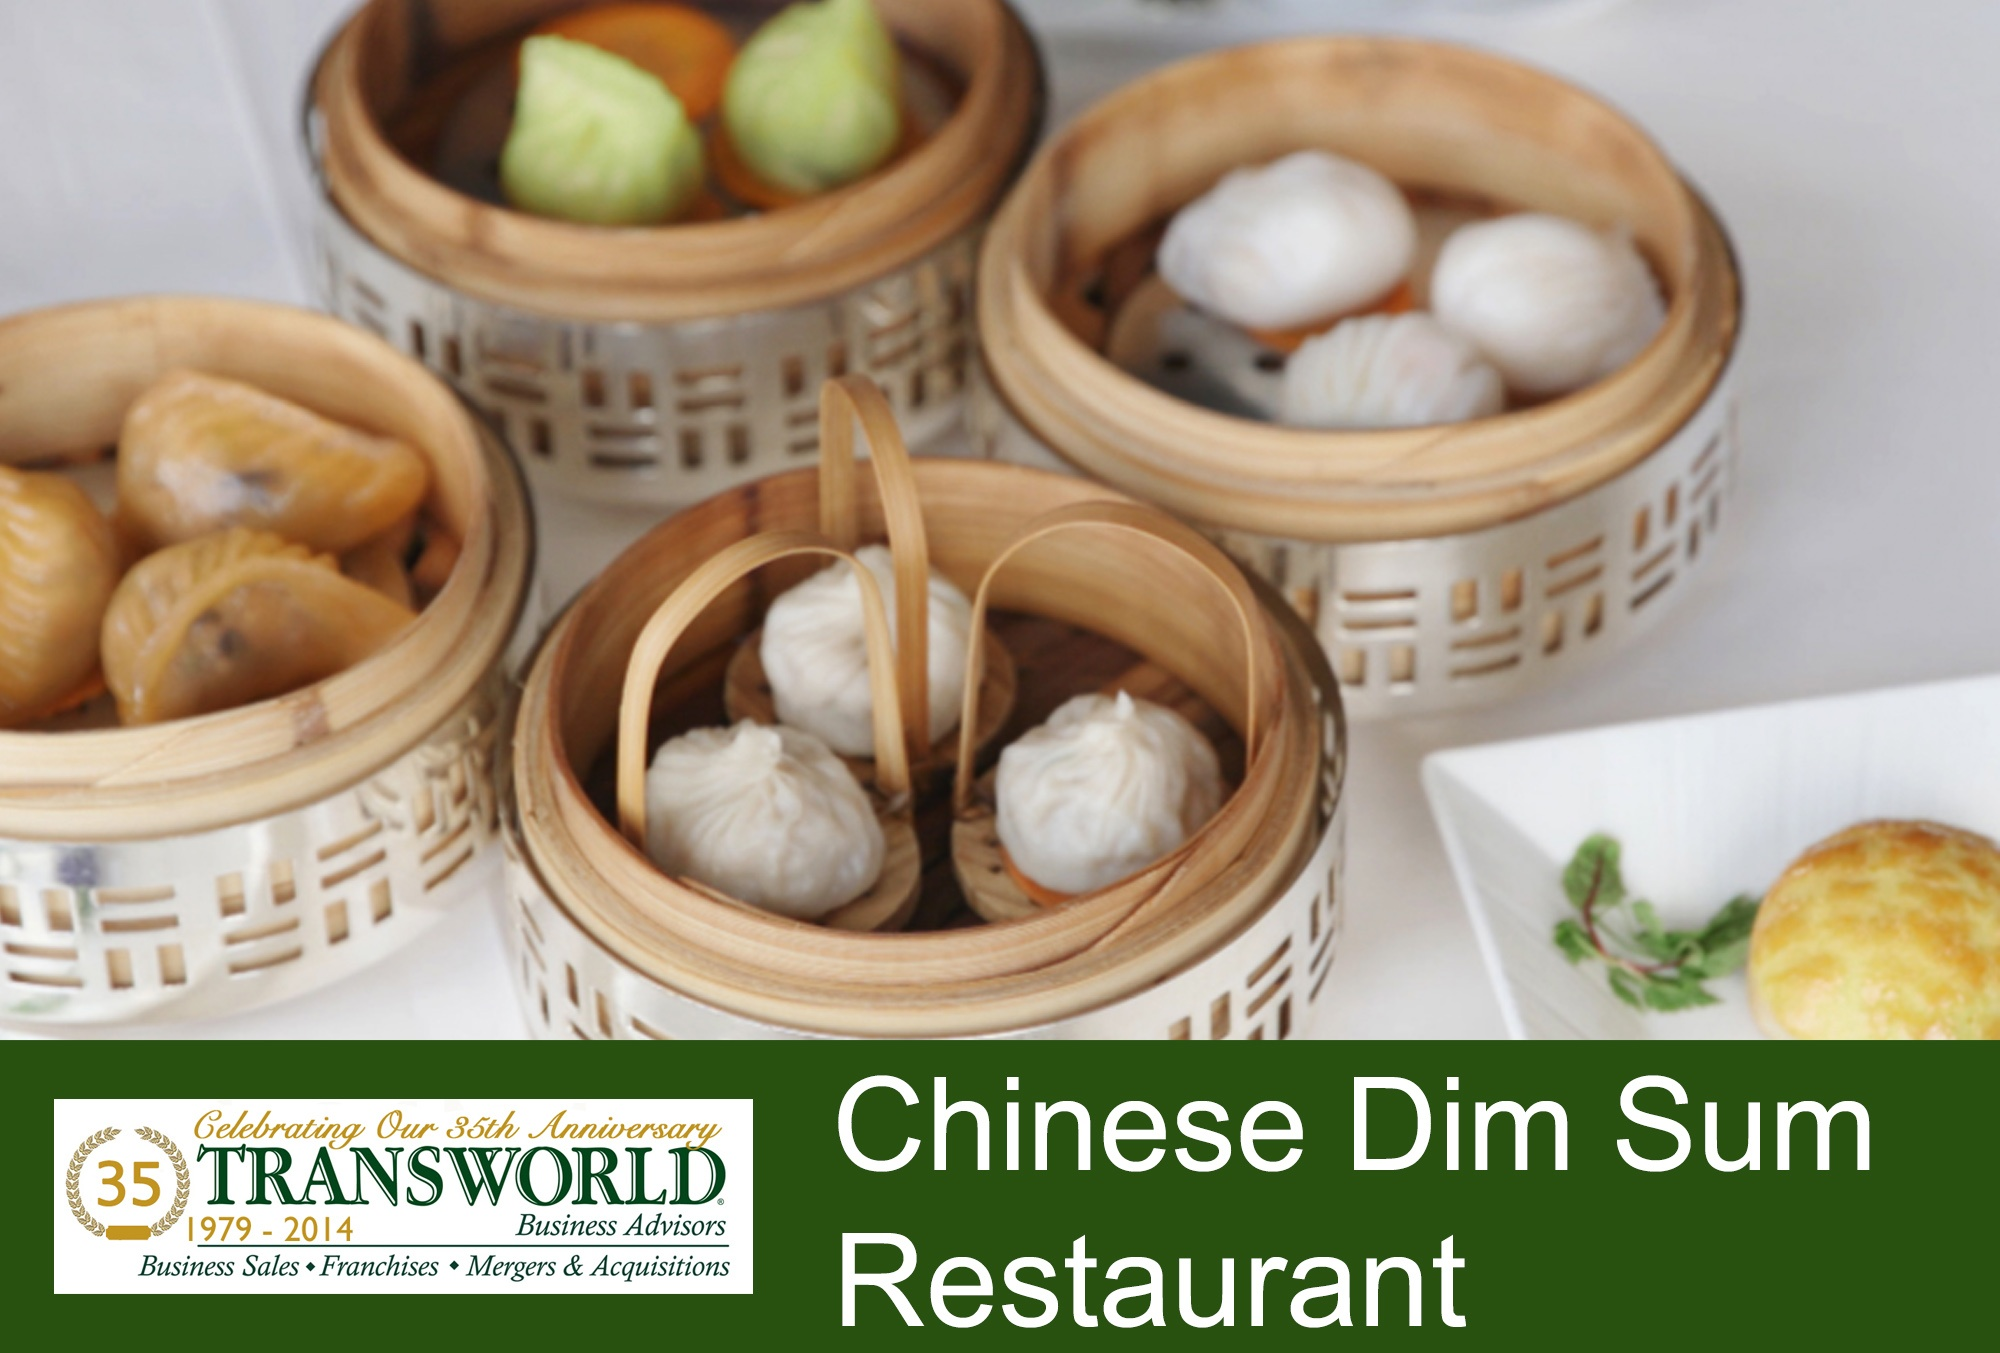 Chinese Dim Sum Buffet Rest. in South Charlotte